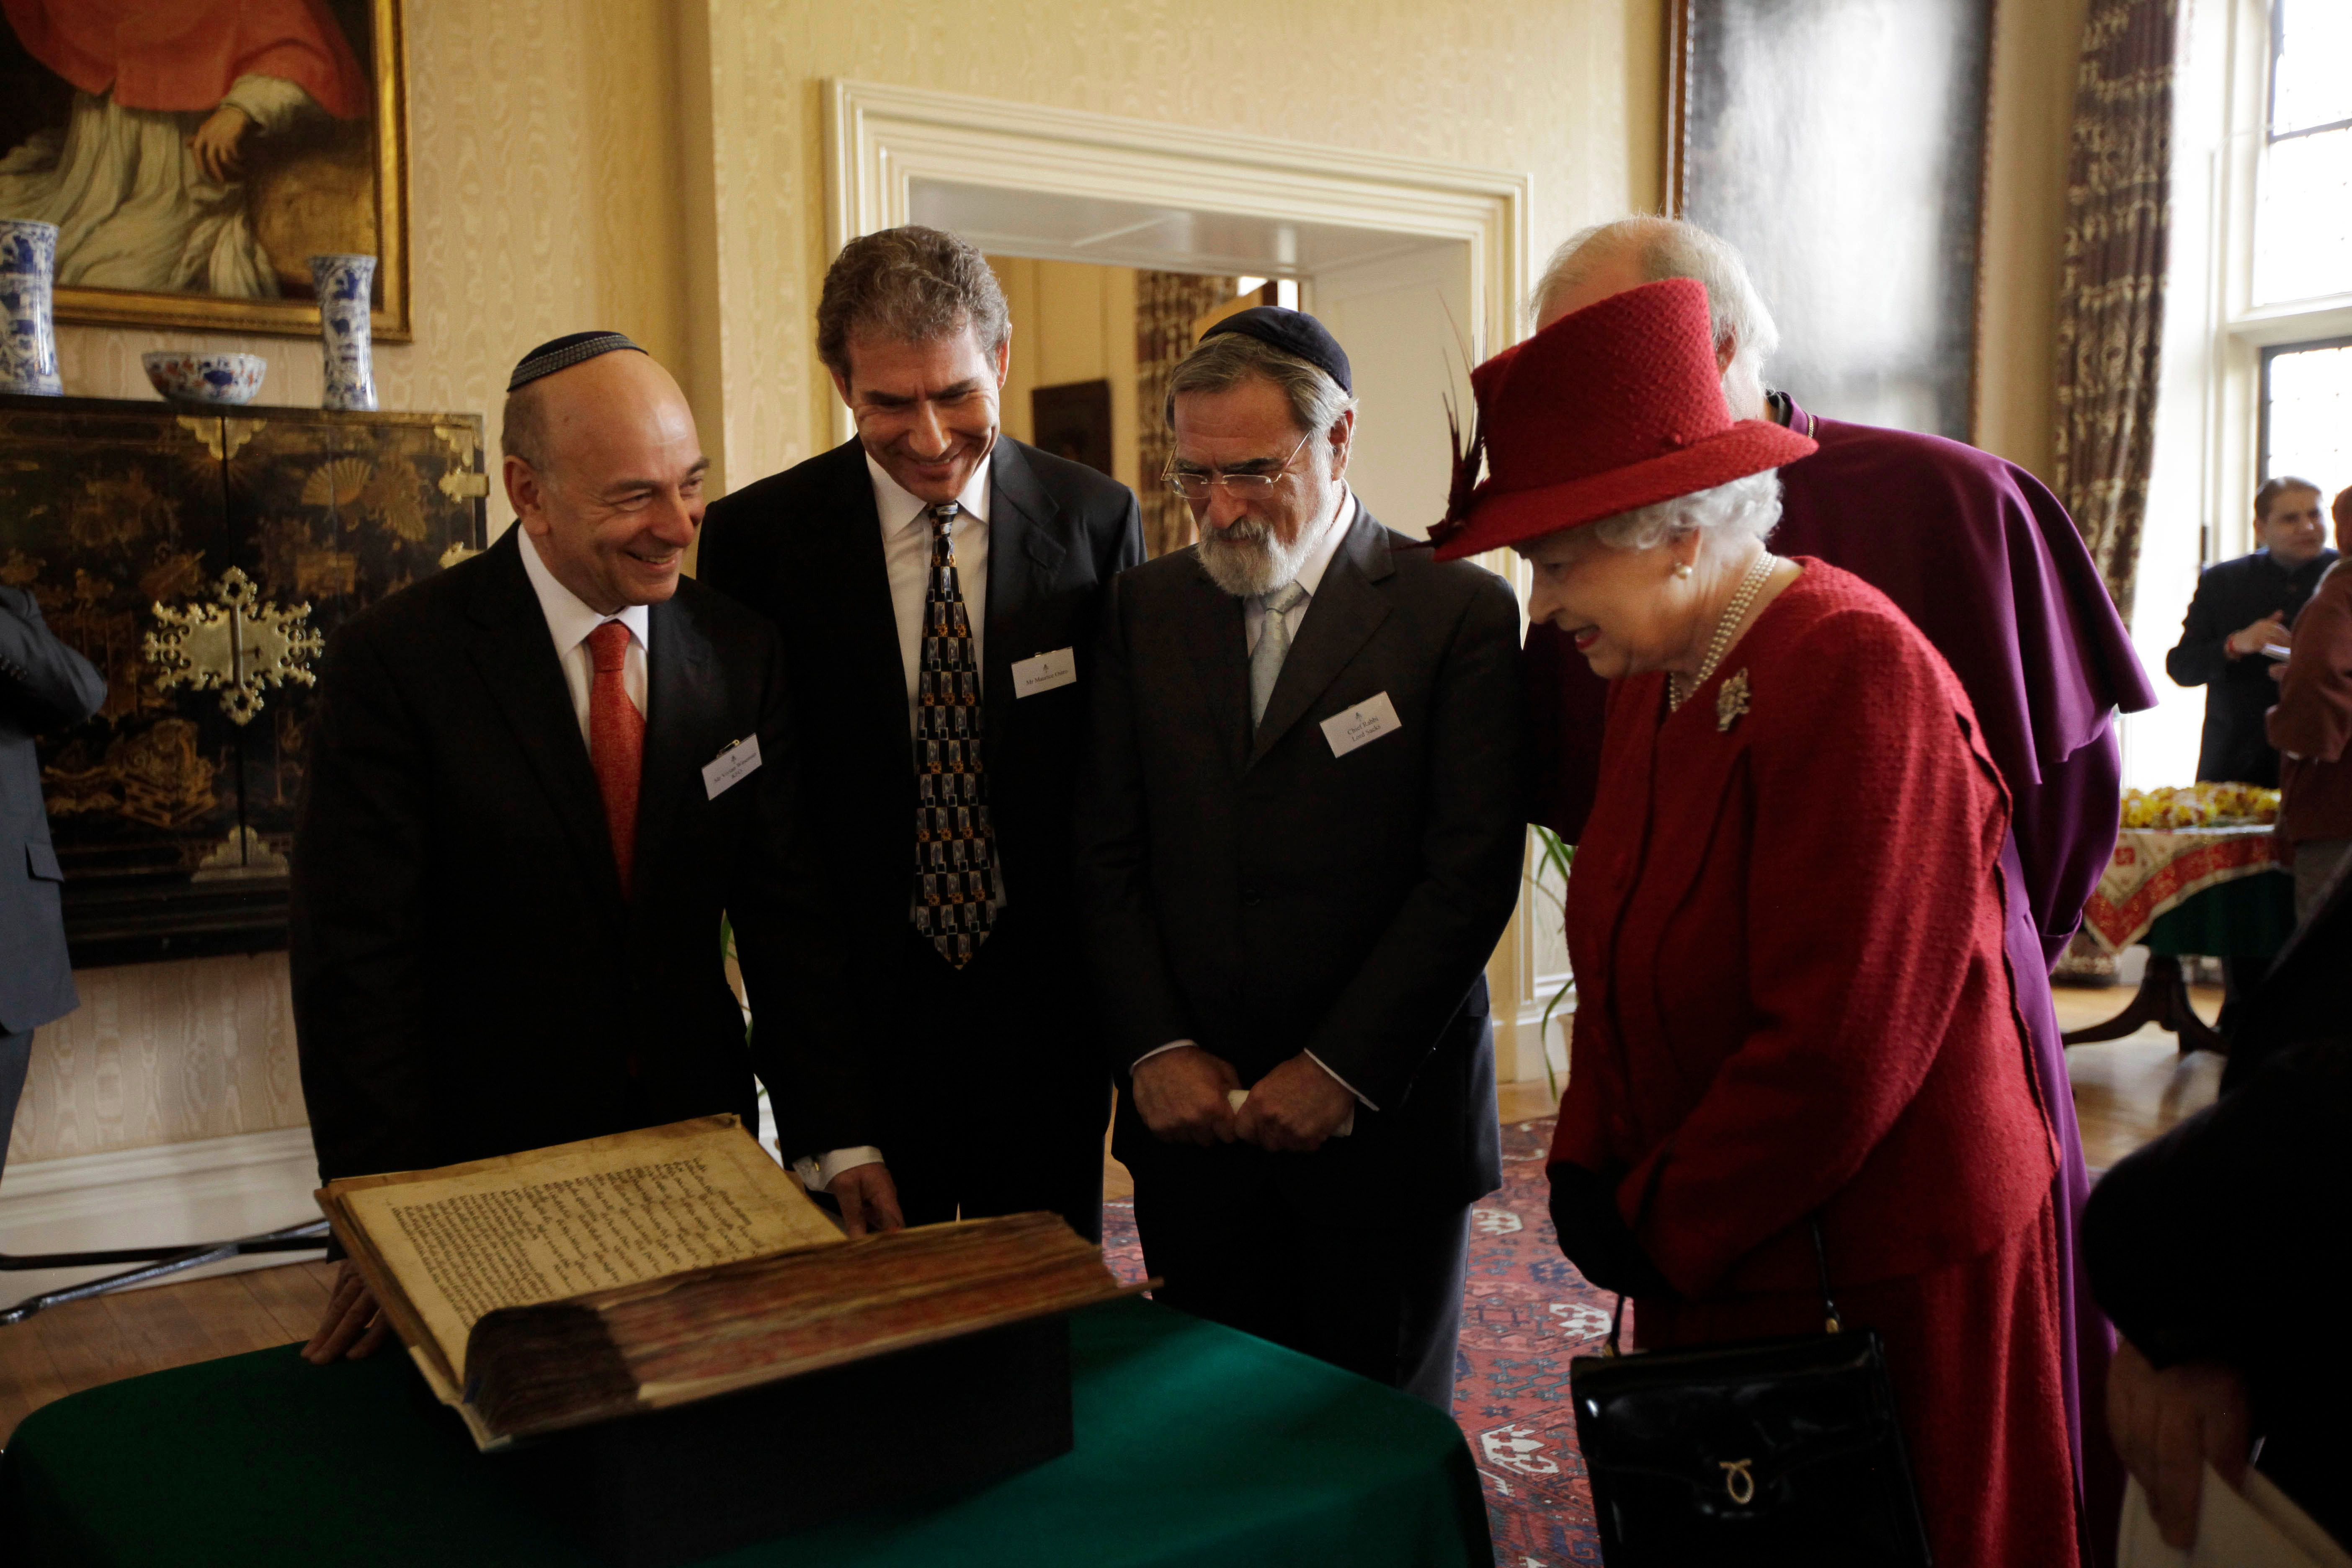 The Royal Treatment: Queen Elizabeth II looks over the Codex Valmadonna I book, from Lunzer's collection, at Lambeth Palace in February 2012, as Jewish communal officials look on.